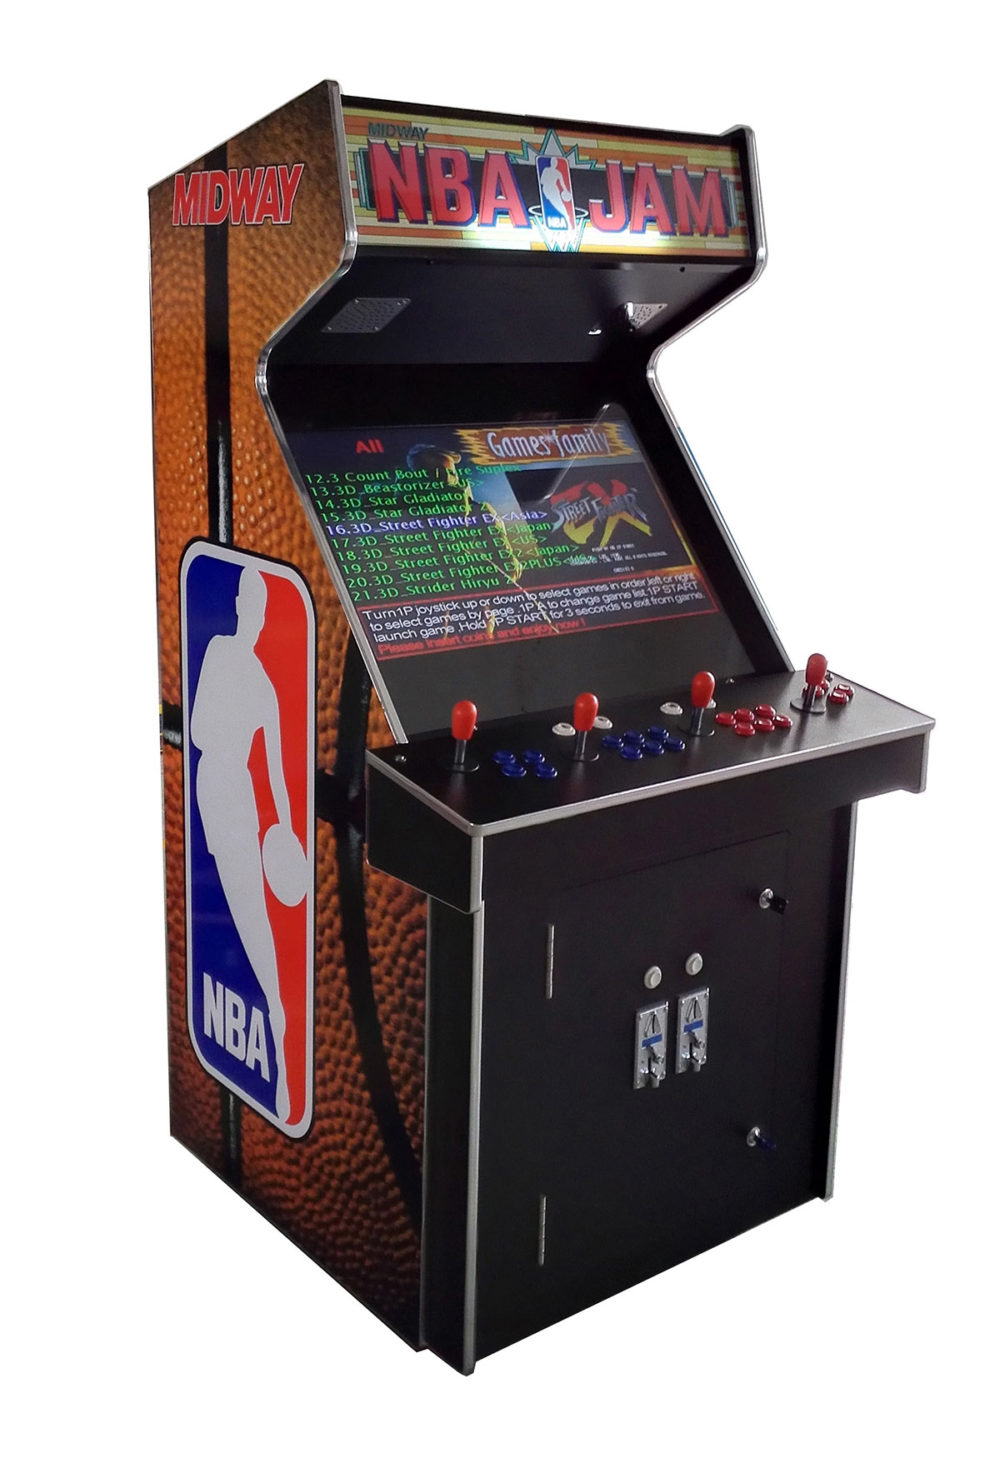 Arcade Rewind 3500 Game Upright Arcade Machine With NBA JAM for sale Sydney